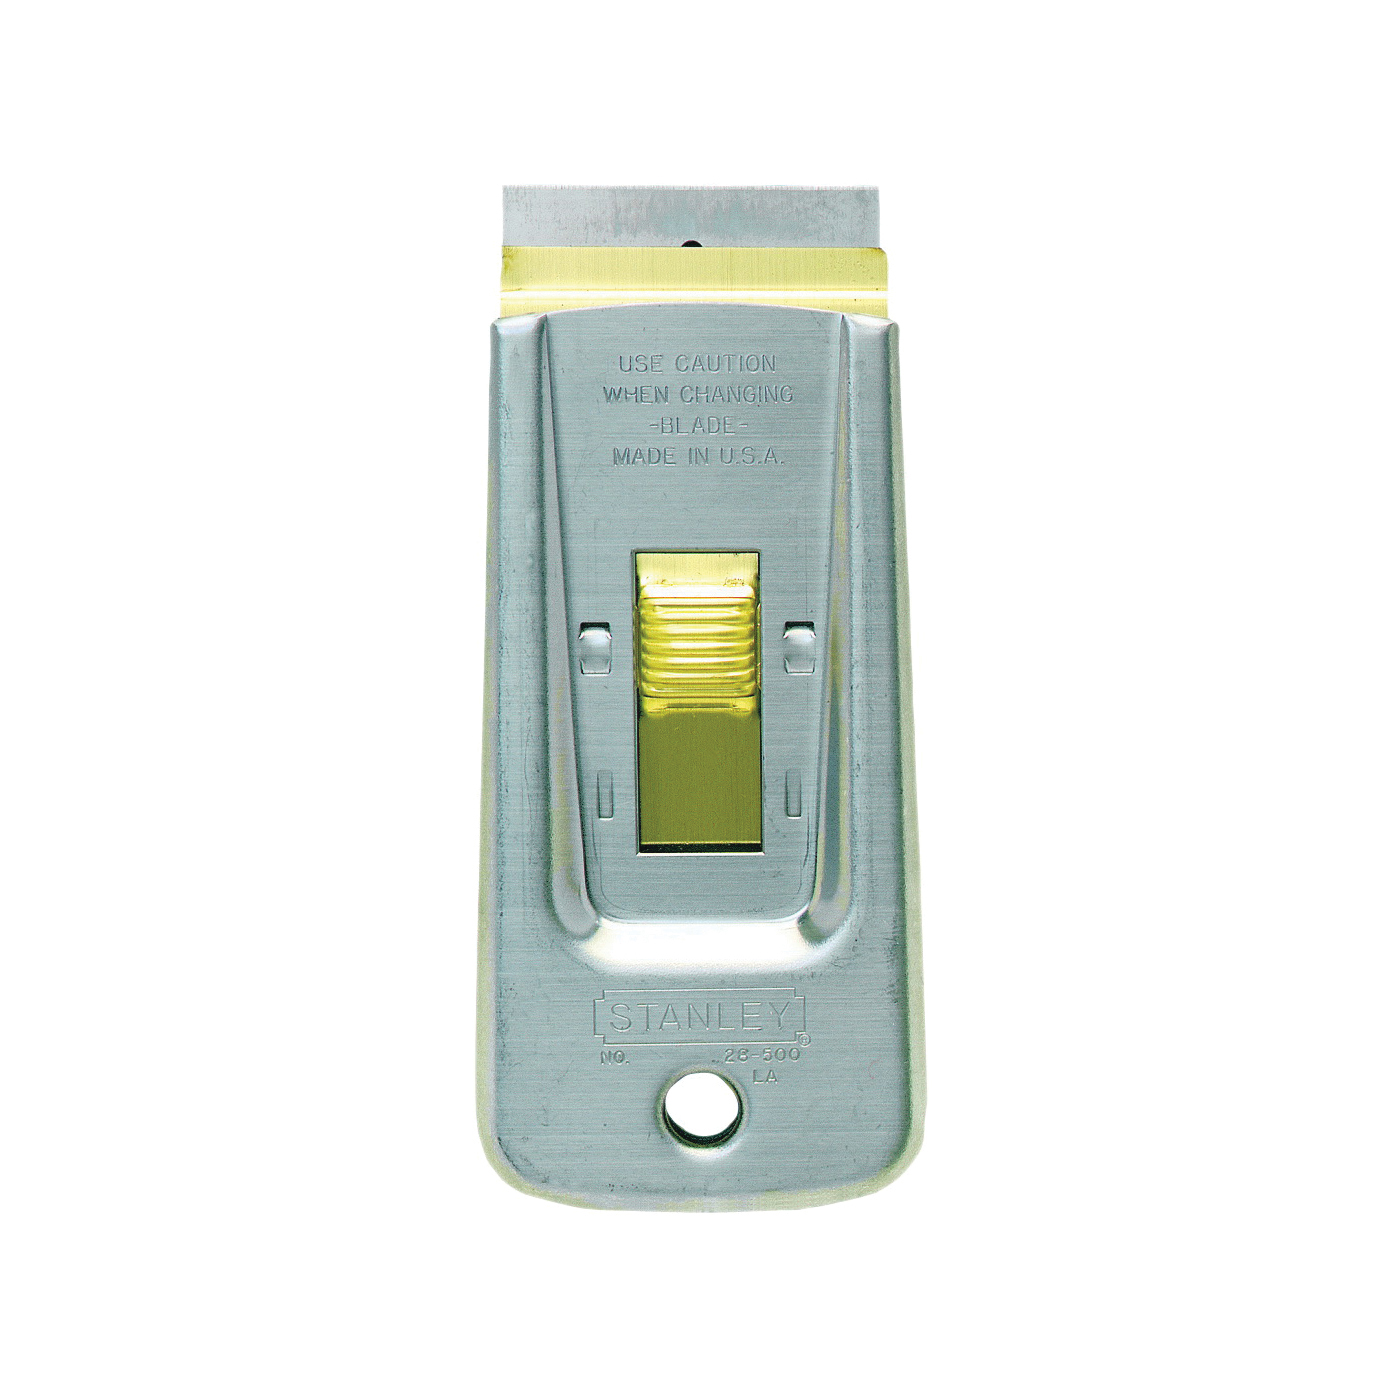 Picture of STANLEY 28-500 Razor Blade Scraper, 1-1/2 in W Blade, Single-Edge Blade, HCS Blade, Steel Handle, Ergonomic Handle